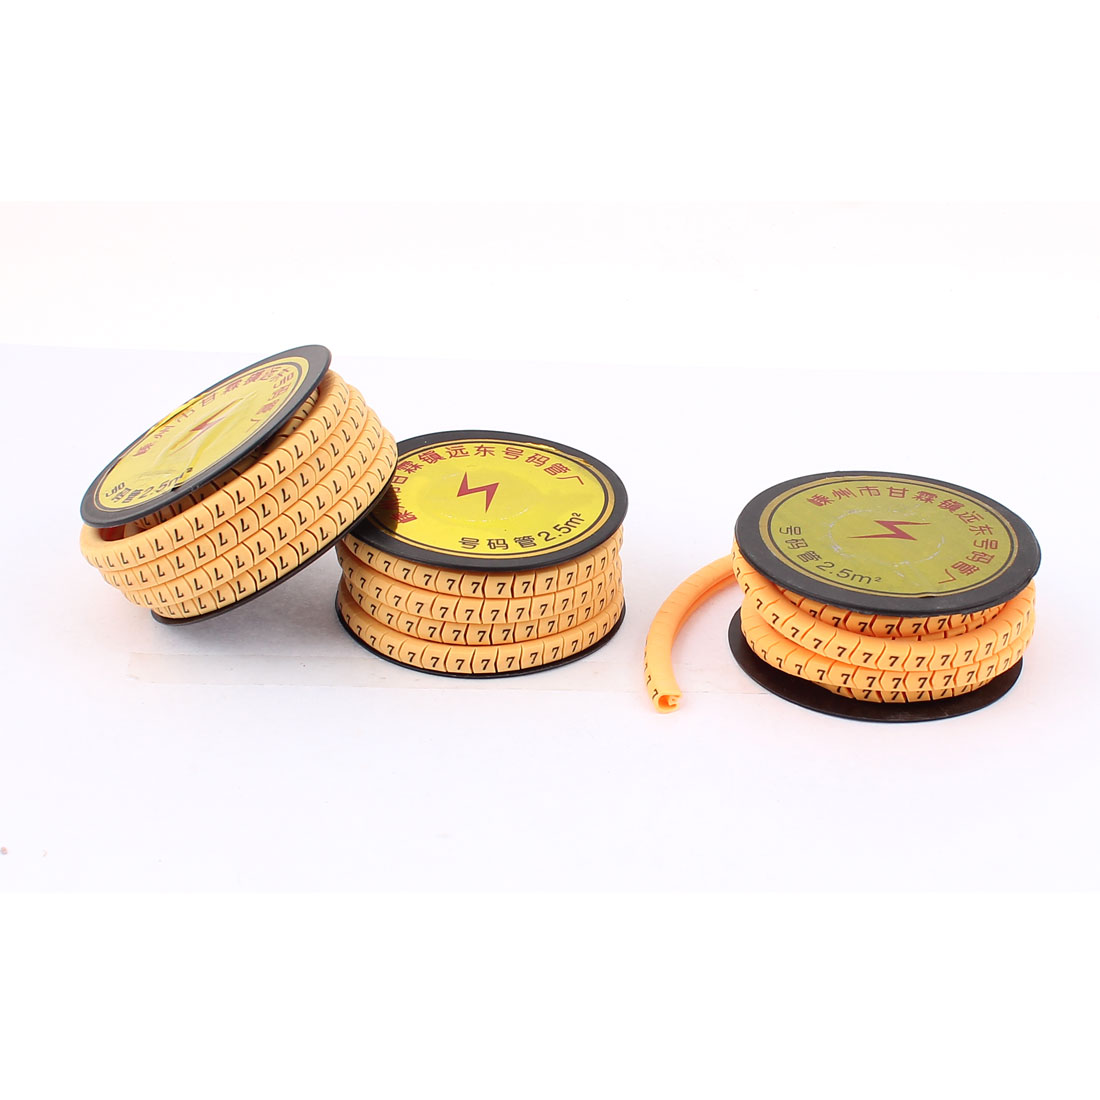 3pcs Flexible Yellow PVC Arabic Numerals 7 Printed Cable Marker Tag Label Reel Roll for 2.5mm2 Wire